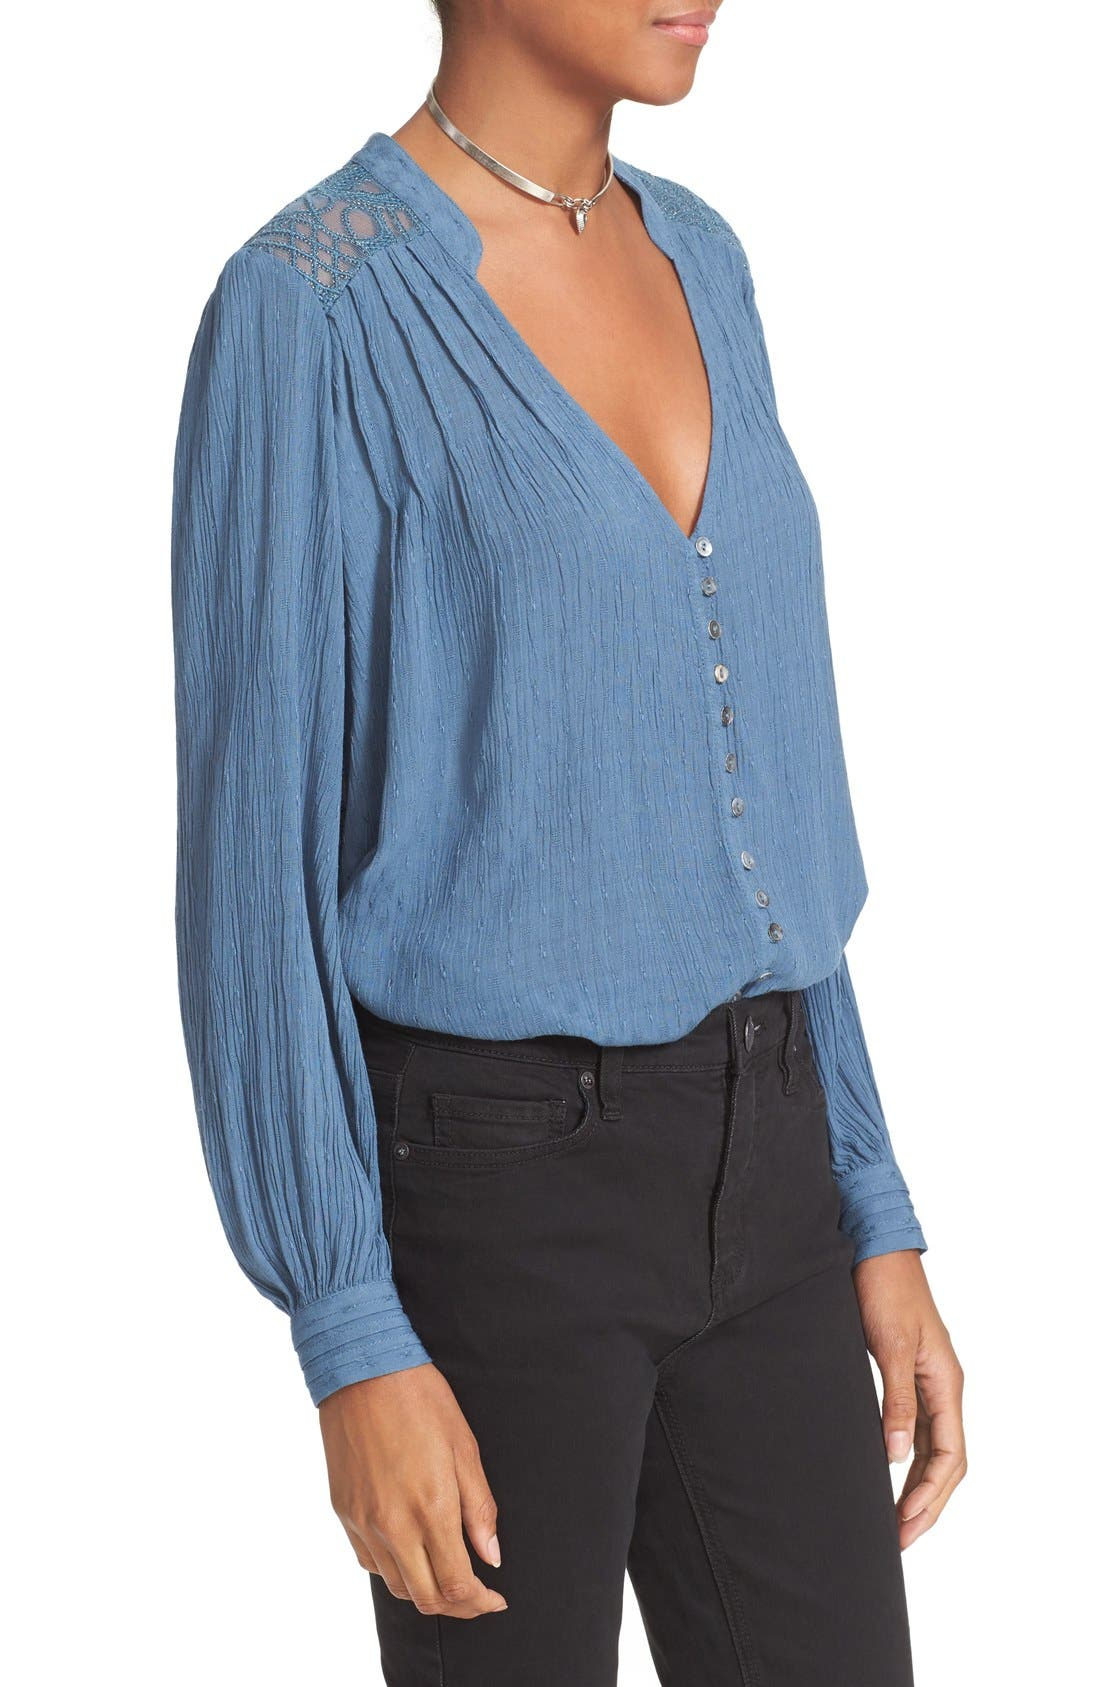 FREE PEOPLE, Canyon Rose Embroidered Yoke Blouse, Alternate thumbnail 4, color, 400